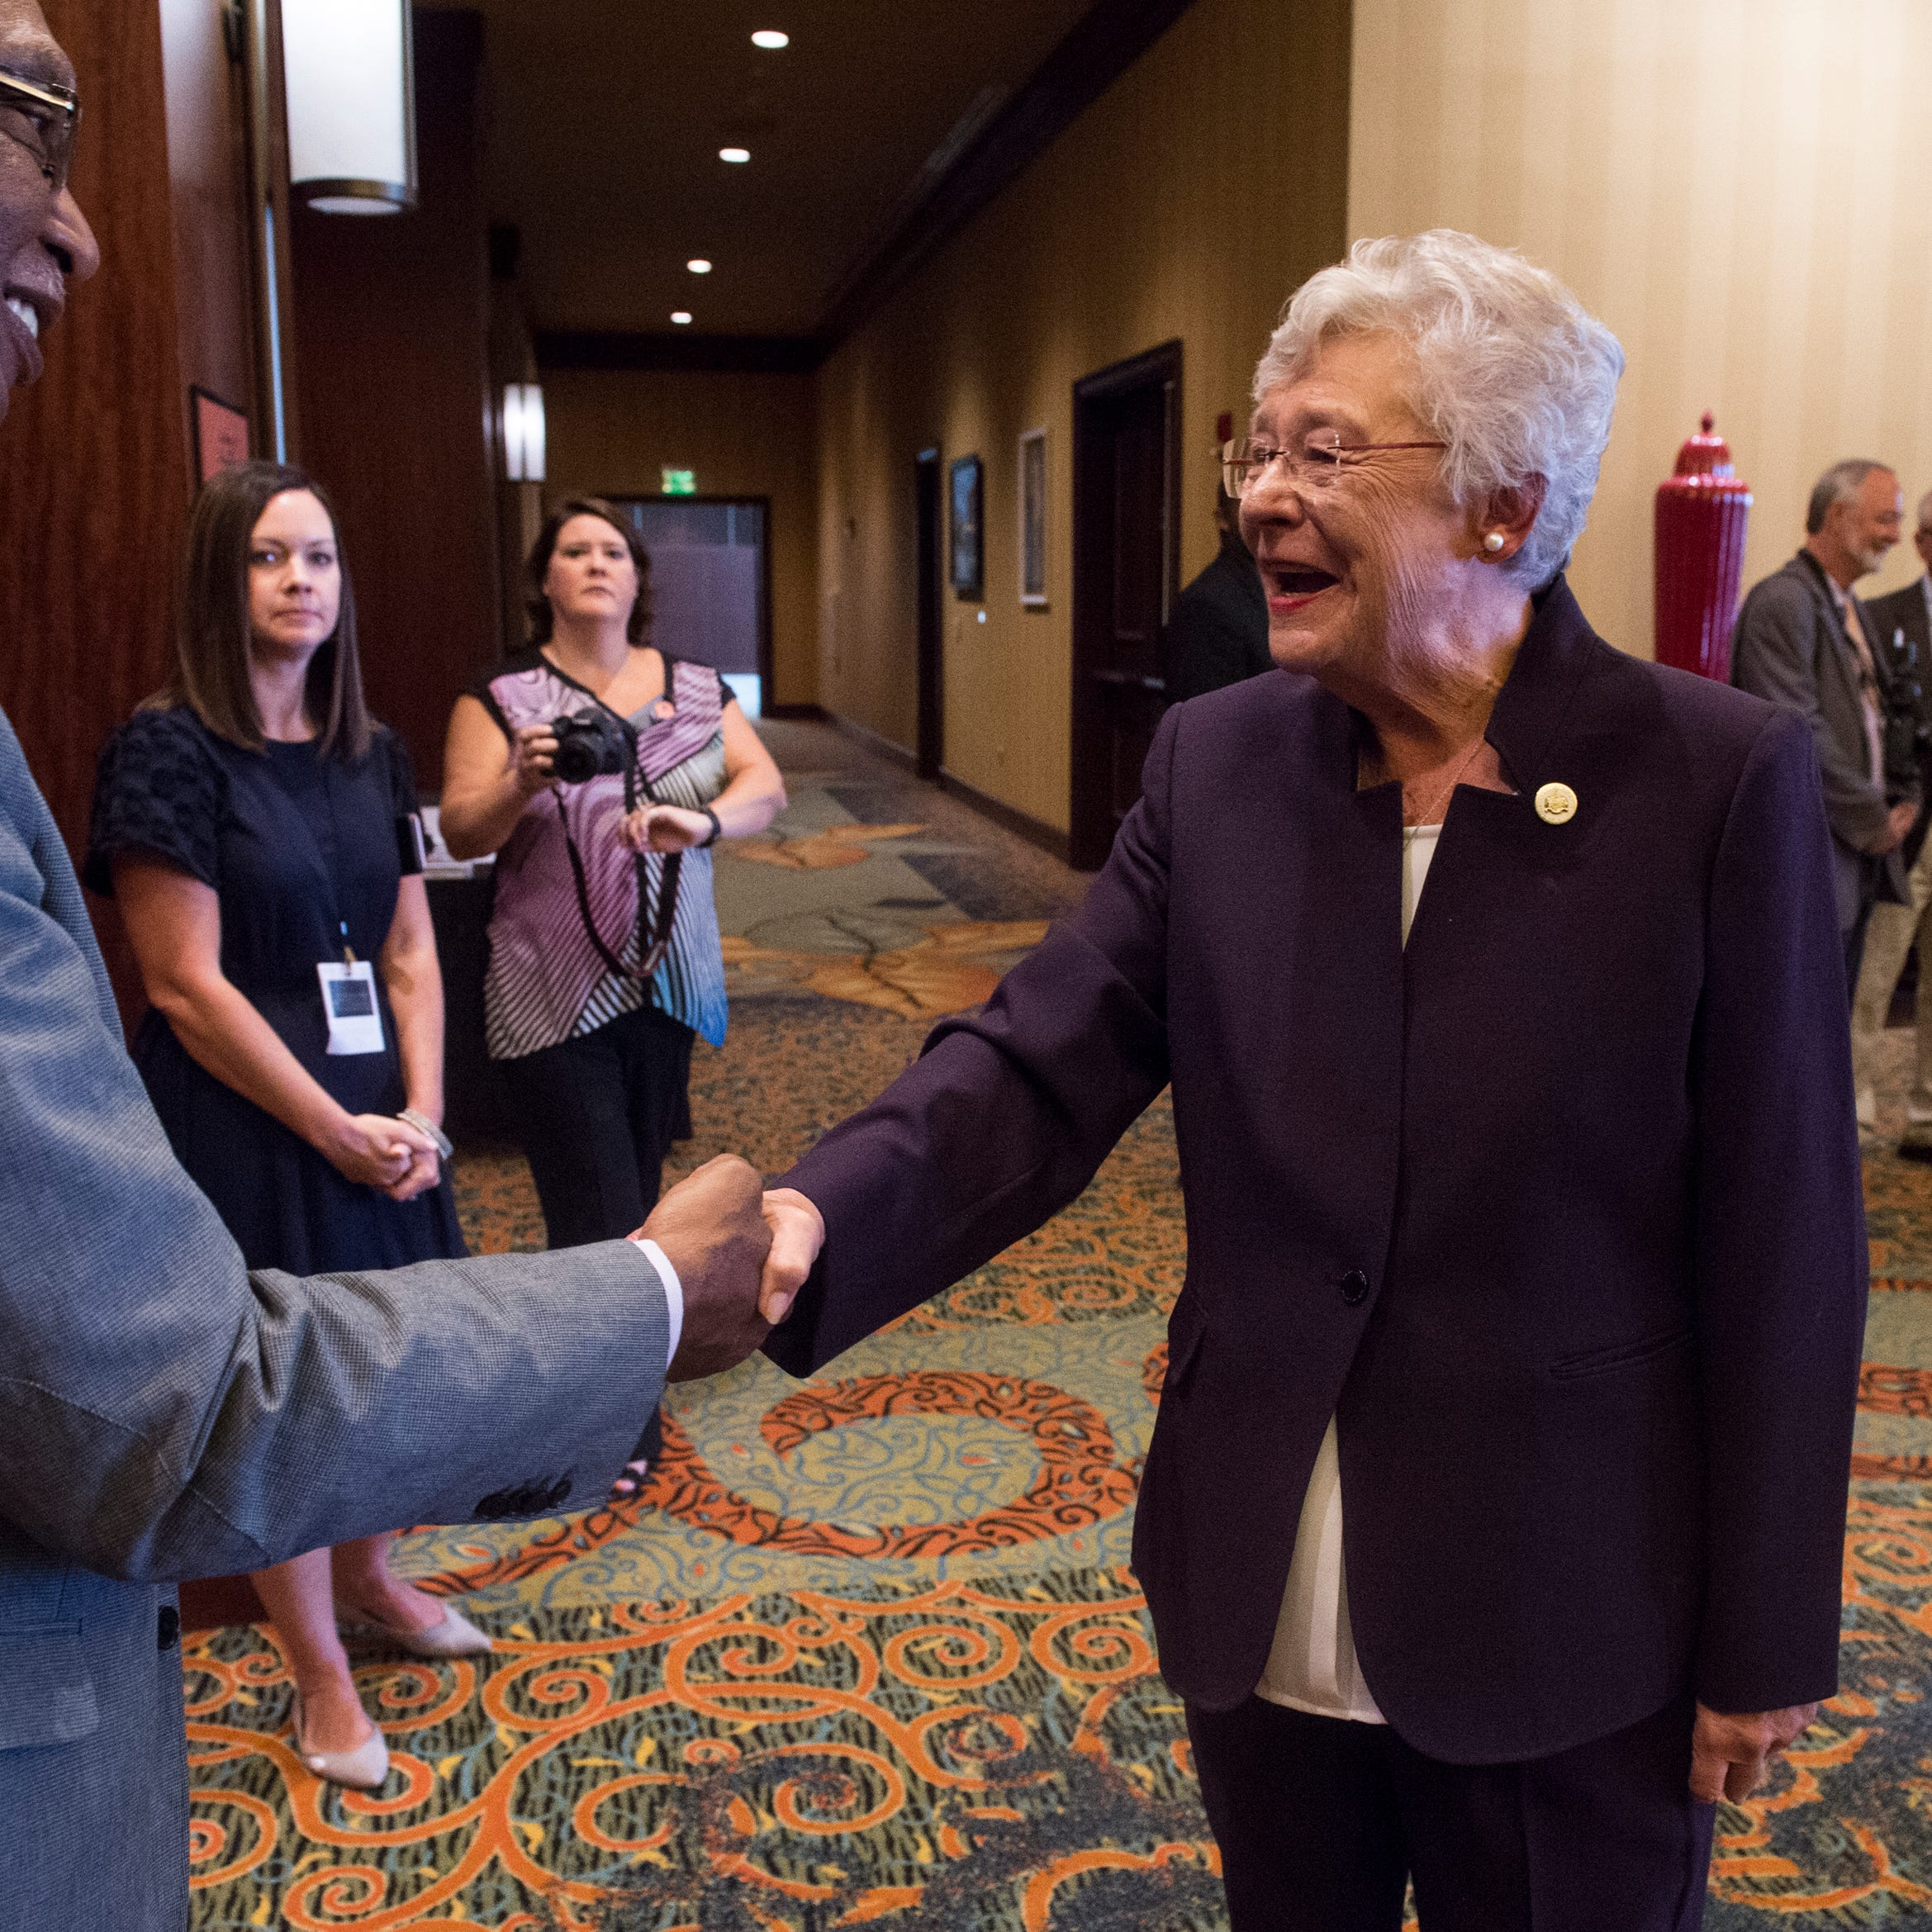 Gov. Kay Ivey meets with constituents during the Public Retiree Convention at Renaissance Hotel in Montgomery, Ala., on Wednesday, Sept. 12, 2018.